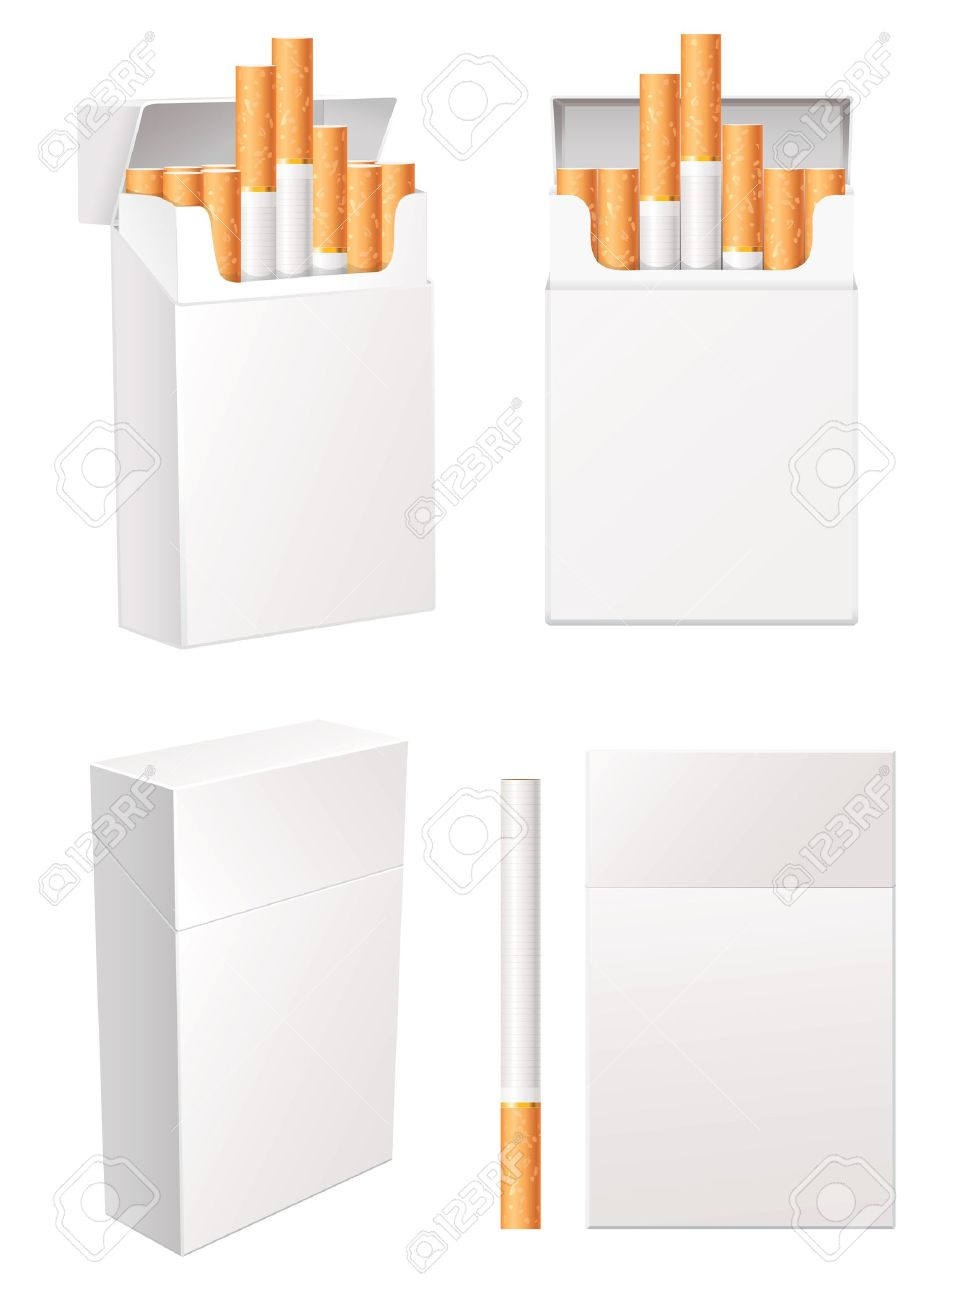 Cheap price cigarettes Dunhill review